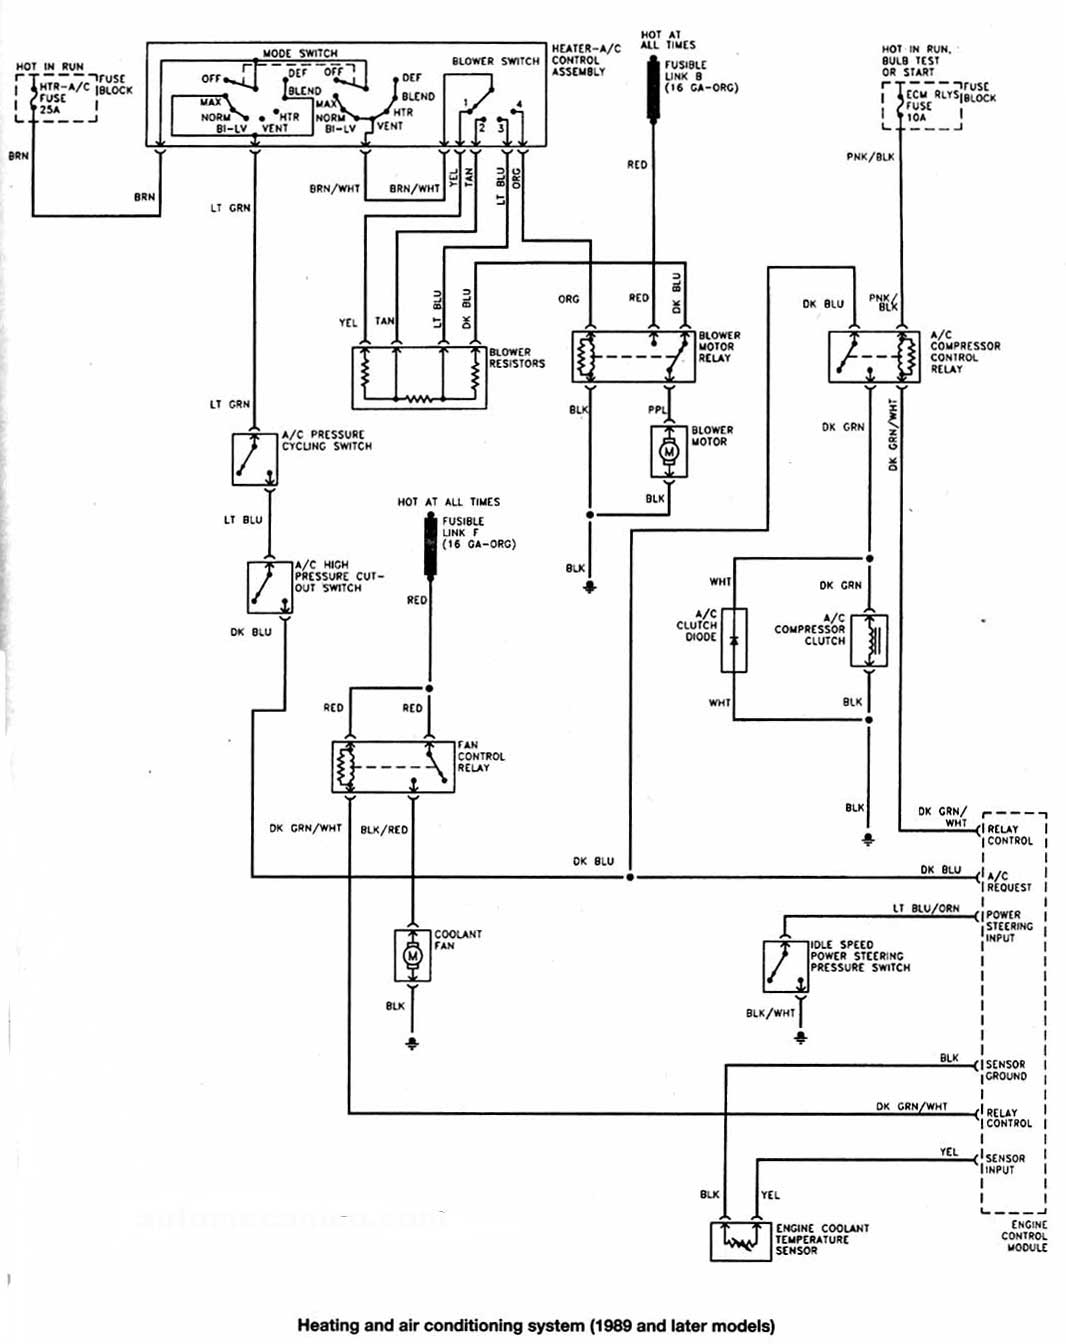 Chevy Trailblazer Radio Wiring Diagram On 2001 Gmc Sierra Fuse Box